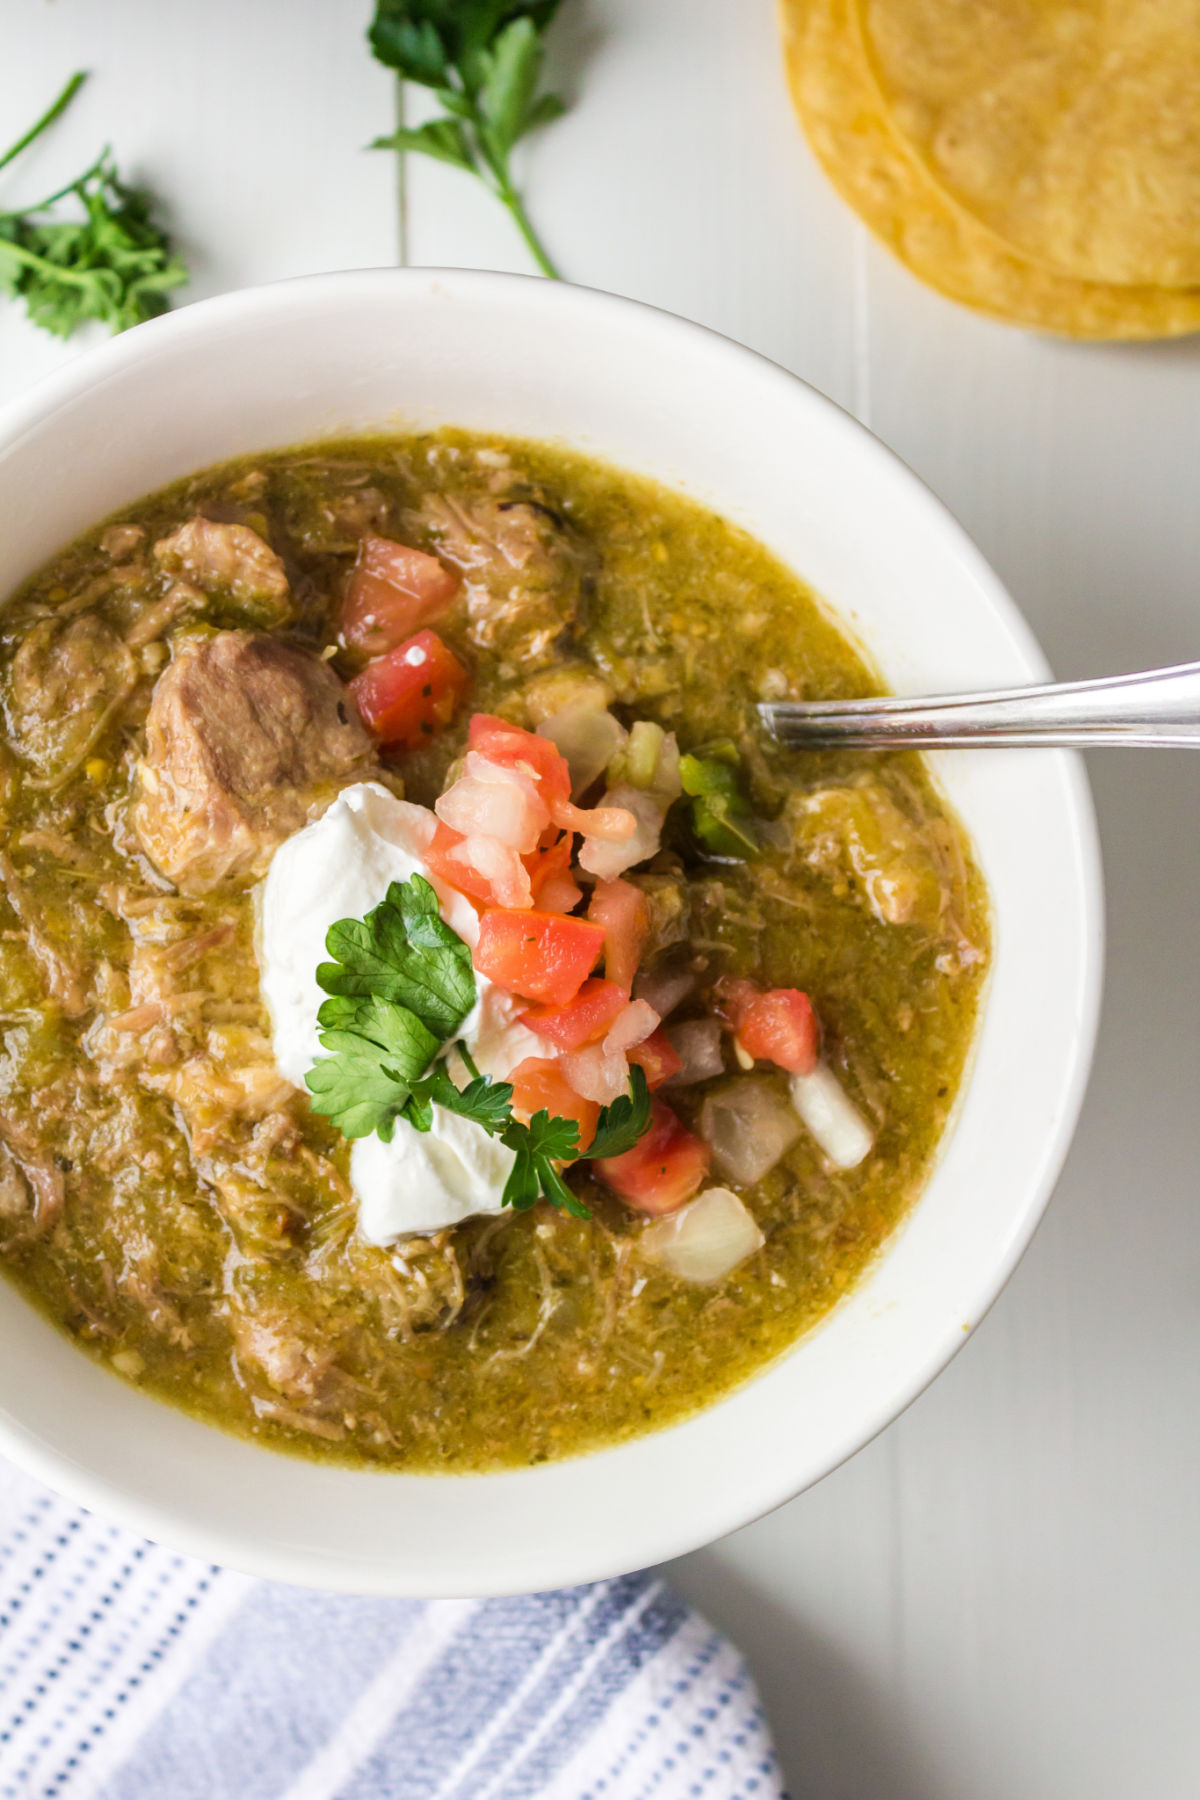 White bowl with pork chile verde in it